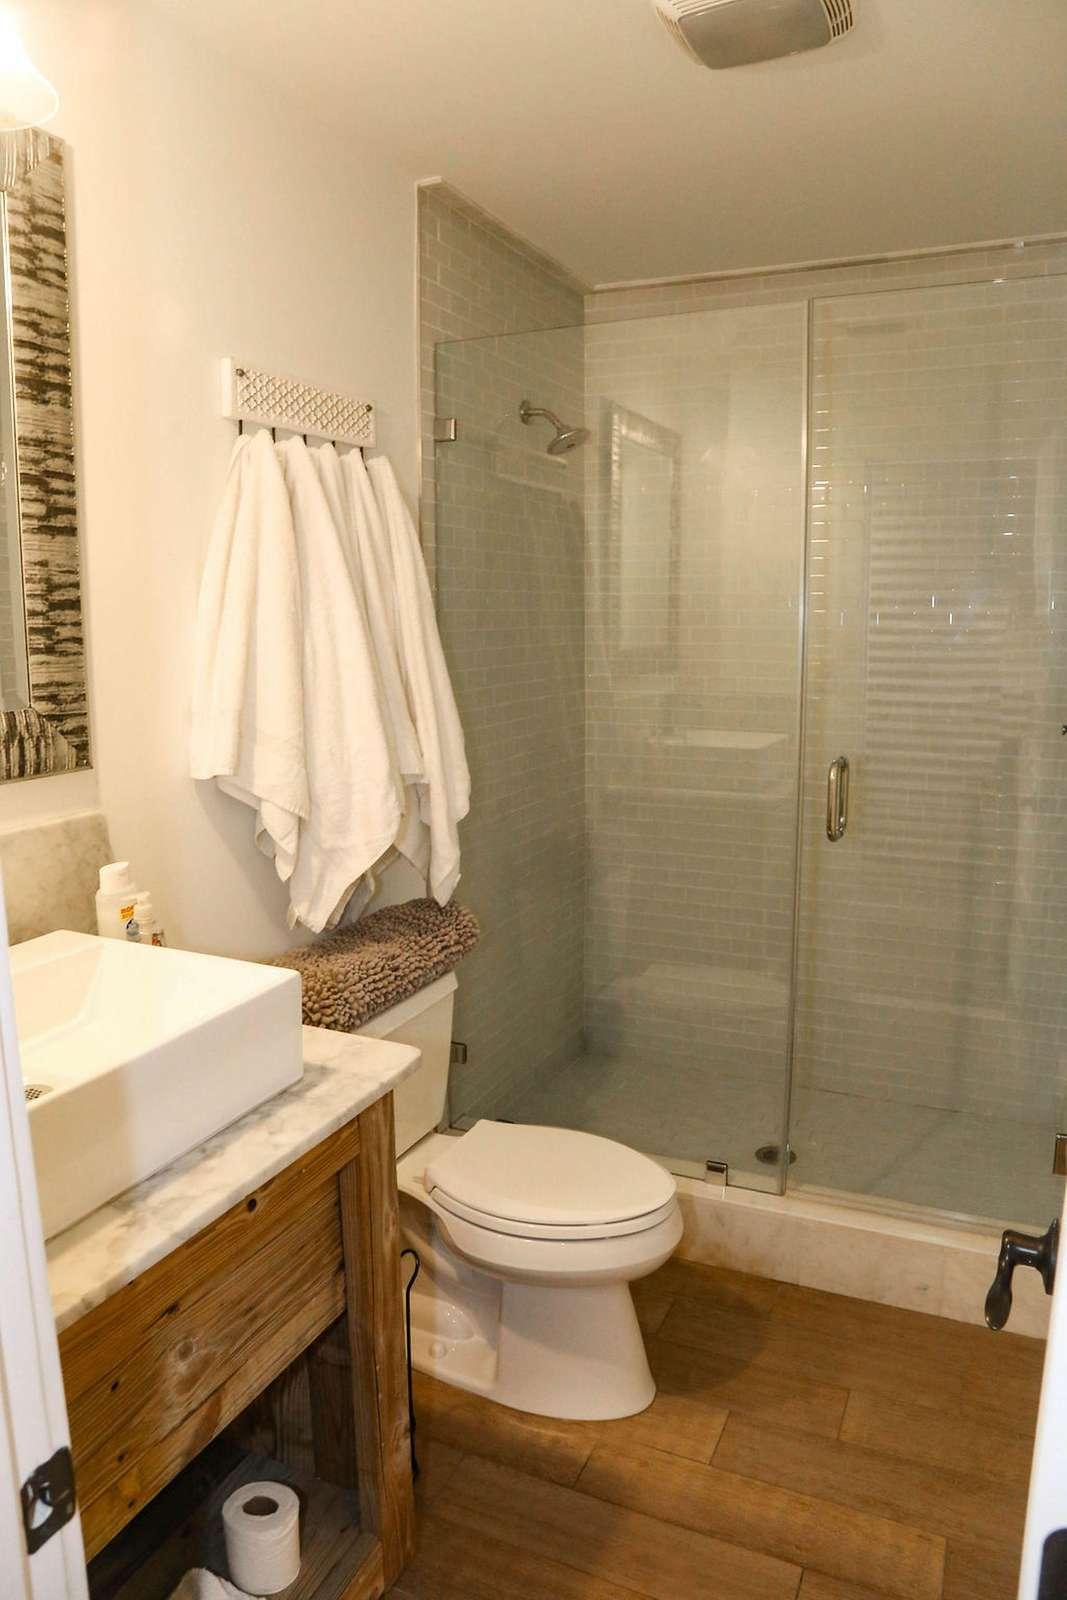 Bathroom # 8 large white marble shower with glass door